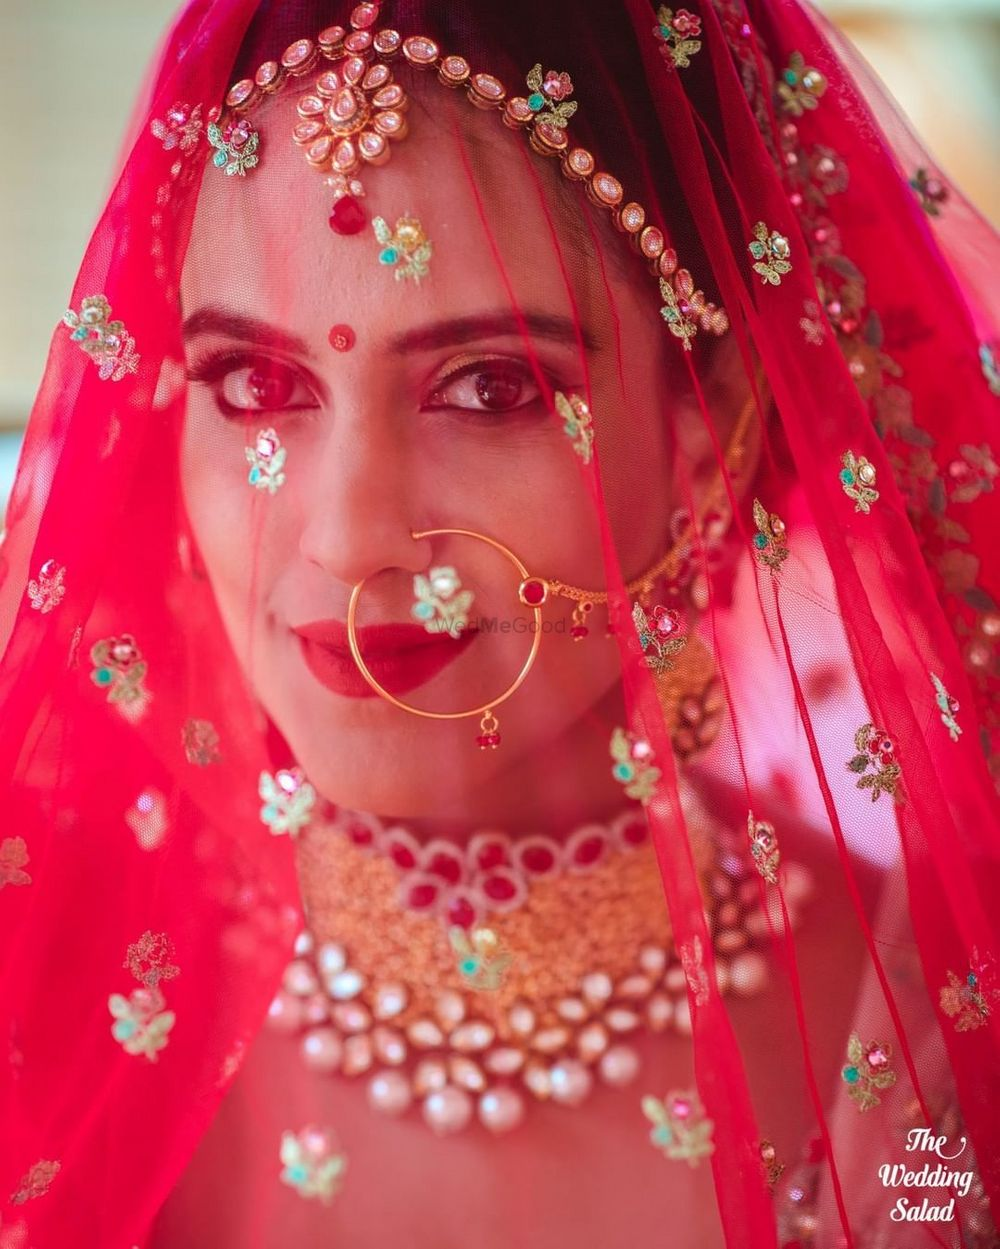 Photo of bride with her dupatta as a veil shot looking into camera